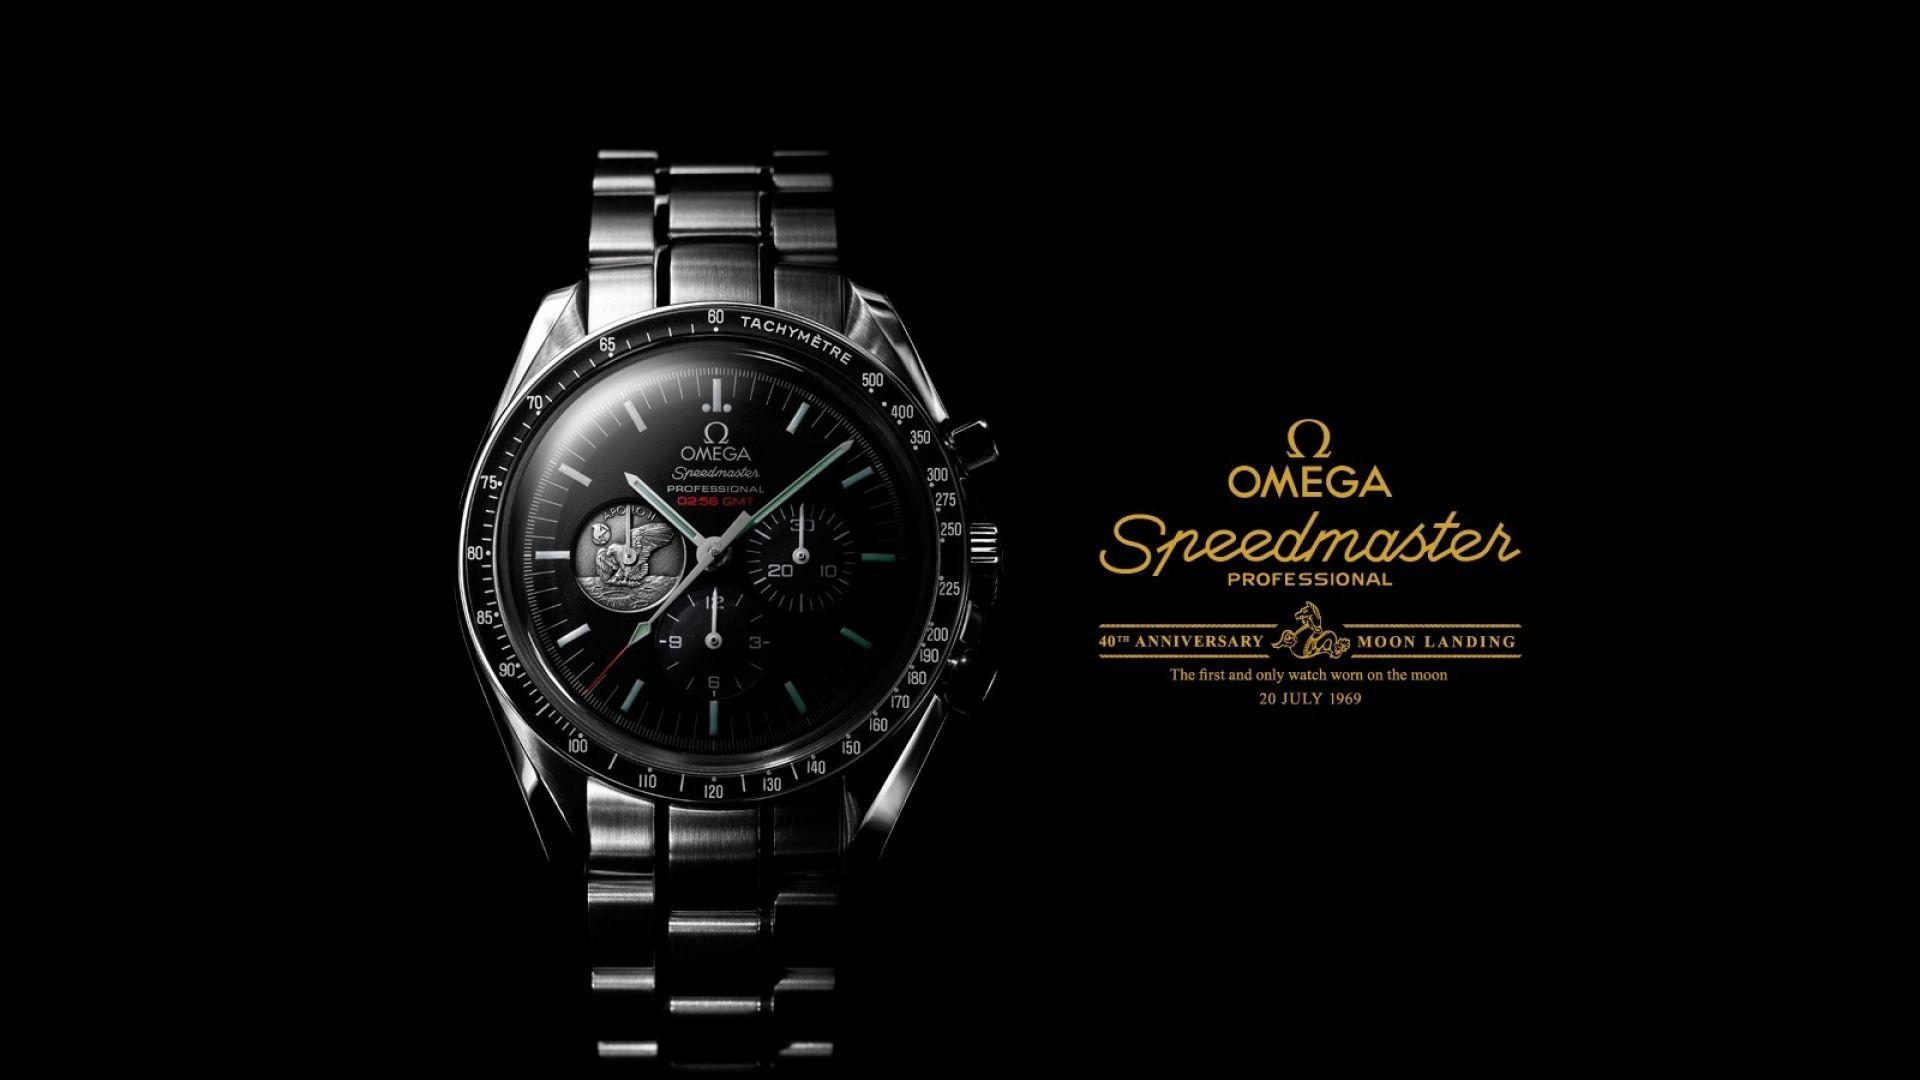 Wrist Watches Wallpapers - Wallpaper Cave